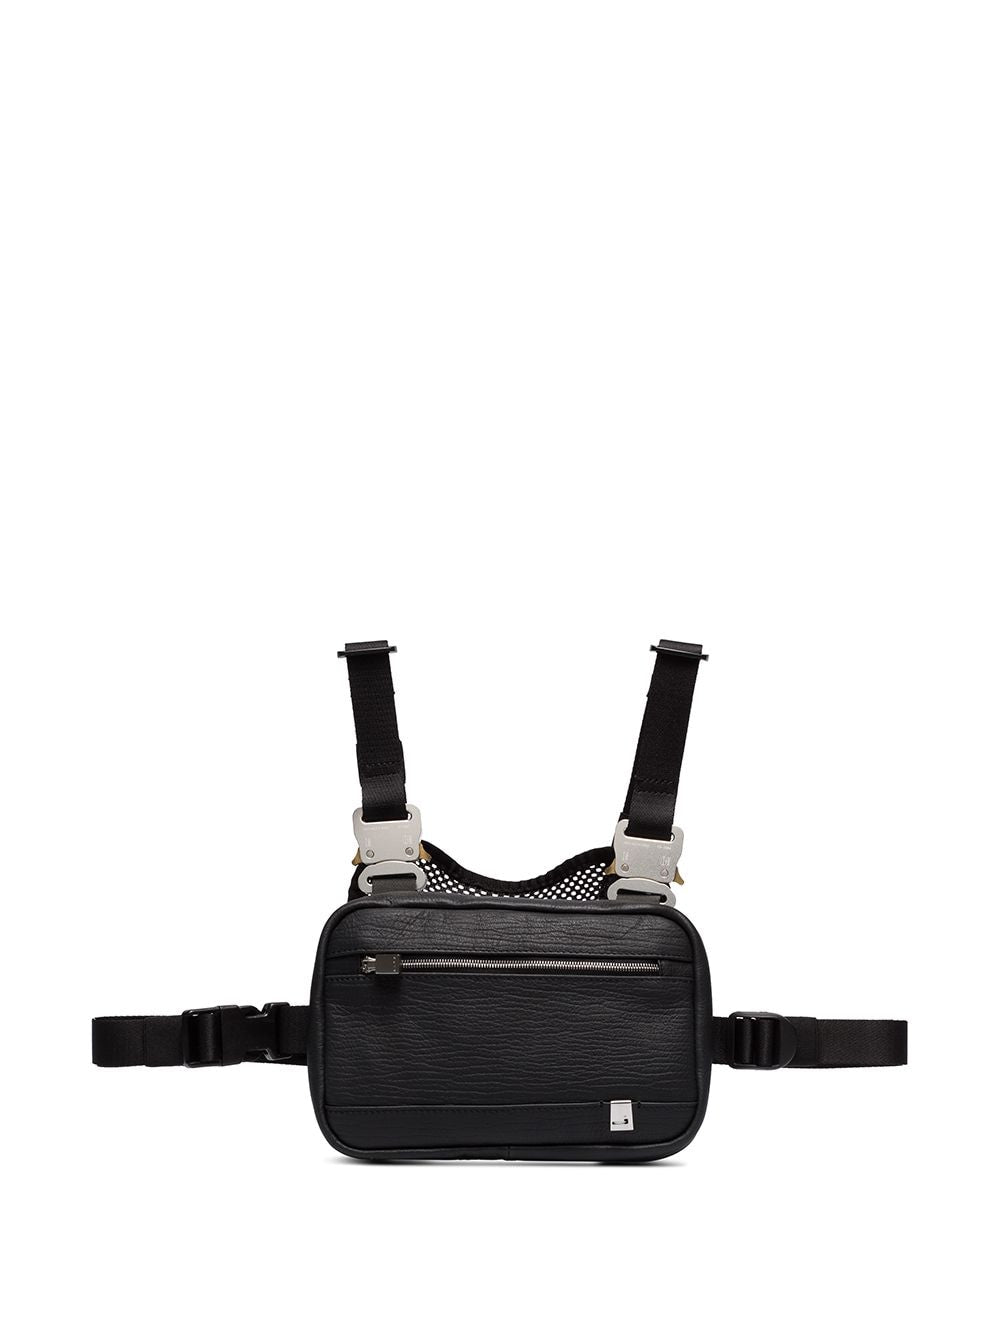 1017 ALYX 9SM UNISEX CLASSIC MINI CHEST RIG